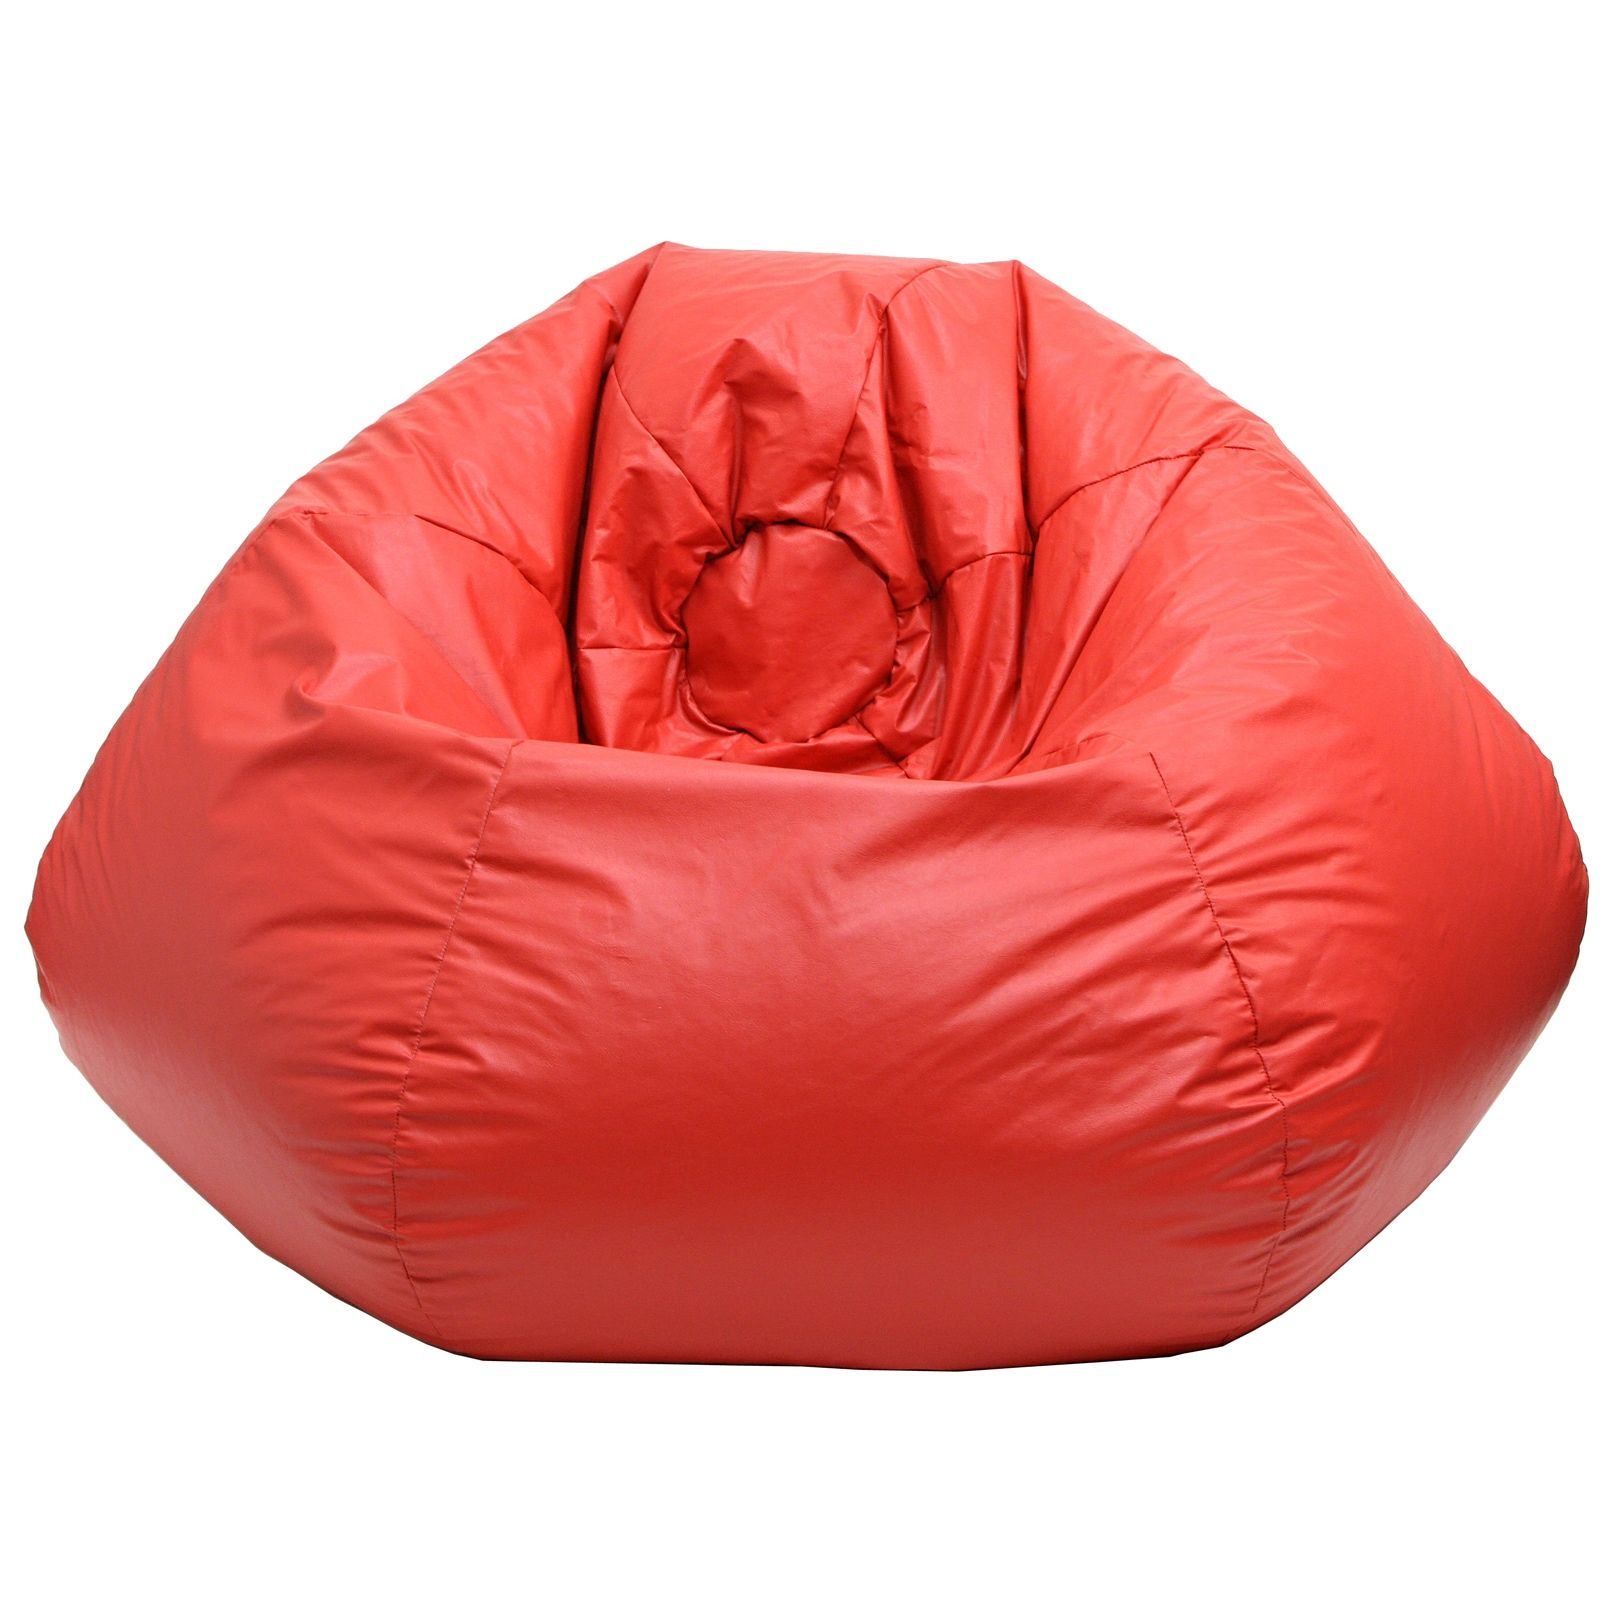 Gold Medal Red Small Toddler Leather Look Vinyl Bean Bag